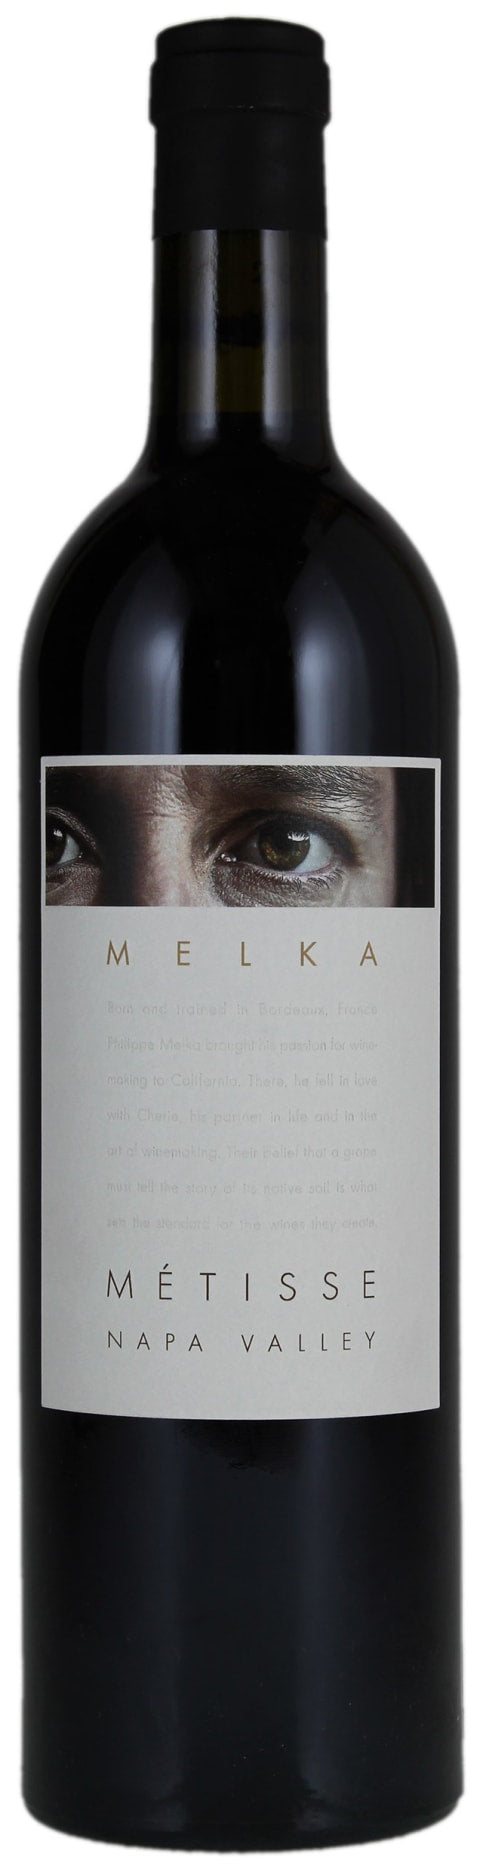 Melka Metisse Jumping Goat Vineyard 2013 750ml